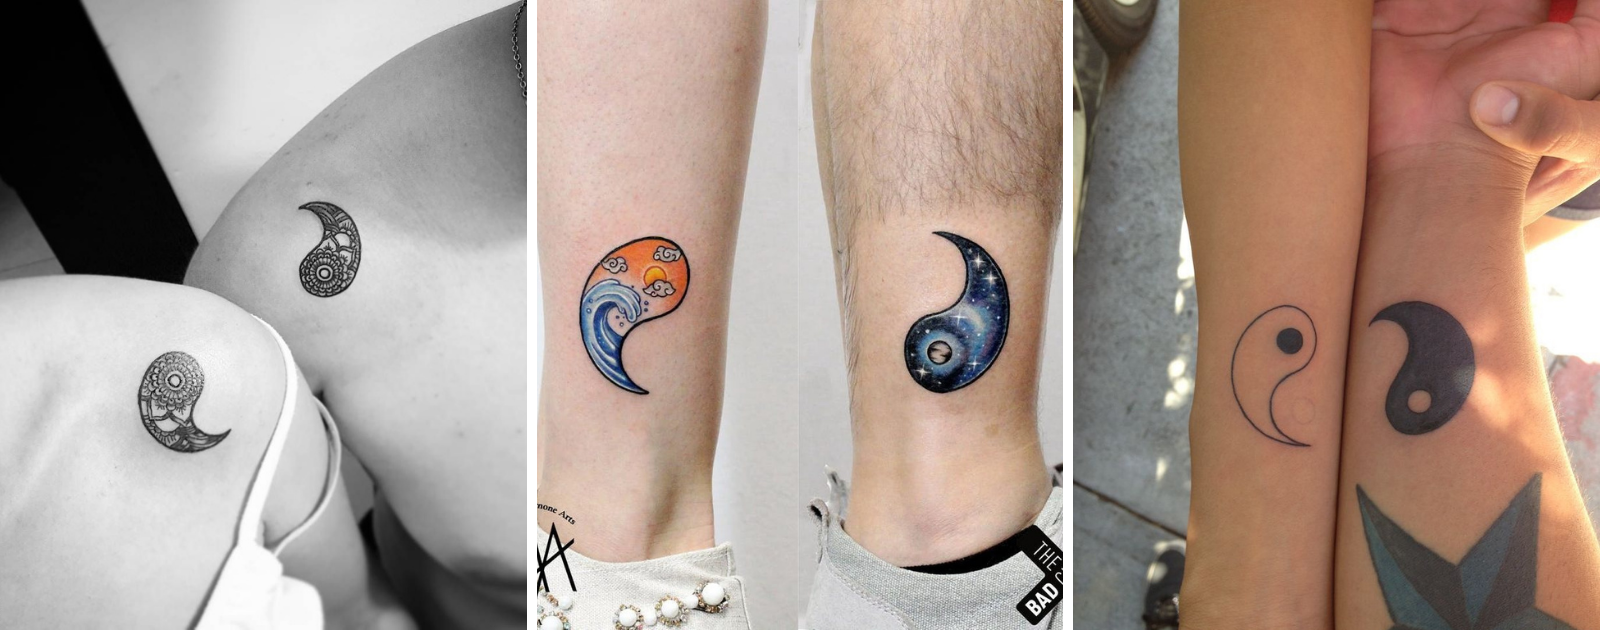 yin yang symbol tattoo for couple